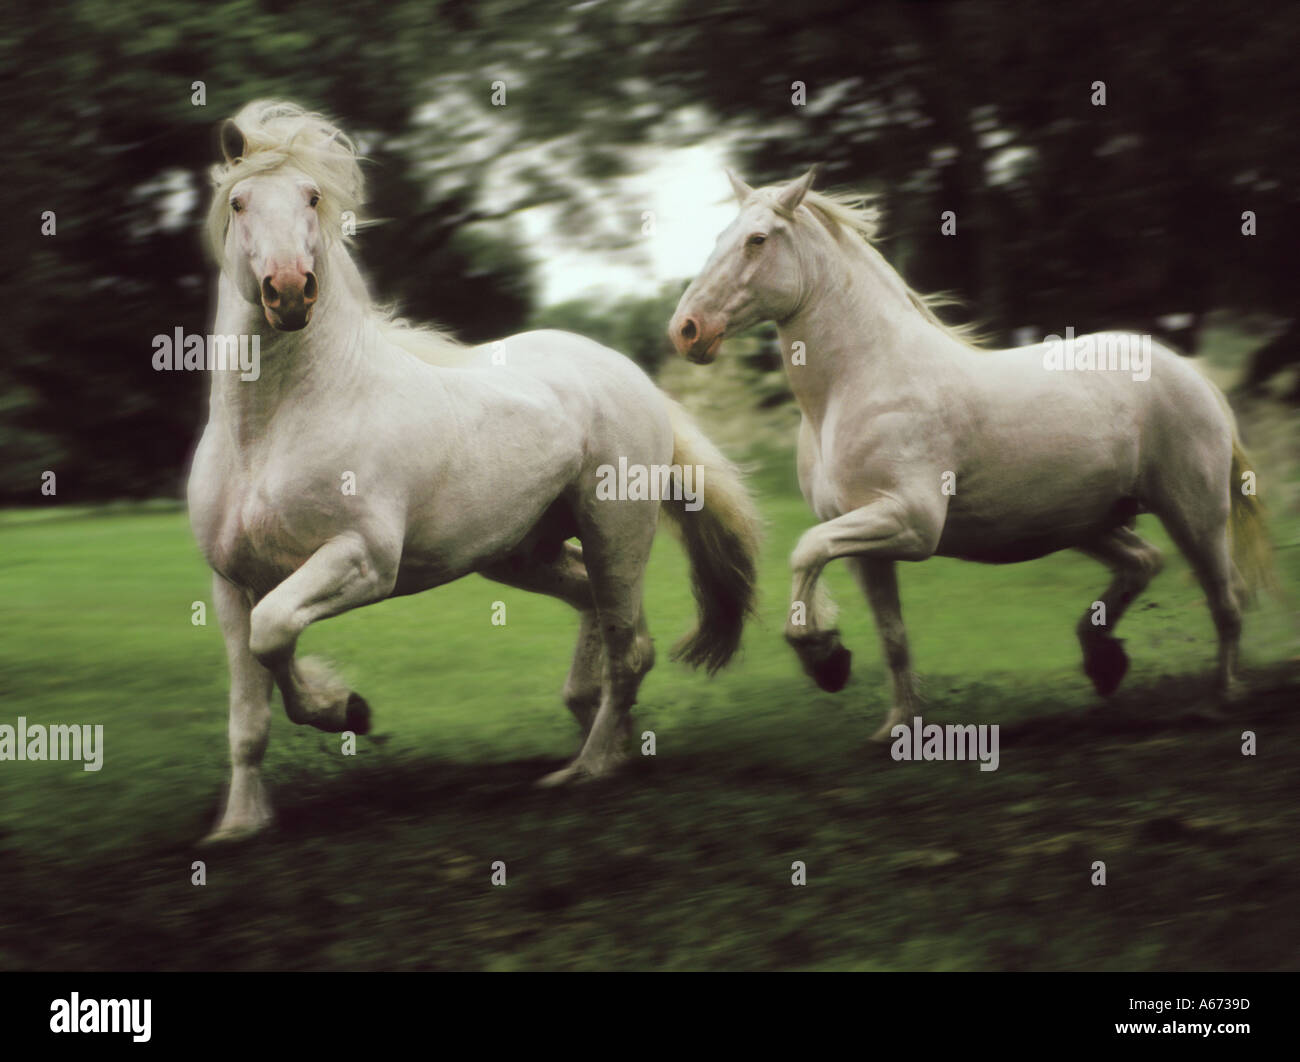 American White Draft Horse Stallion And Mare Trot Across Paddock Stock Photo Alamy